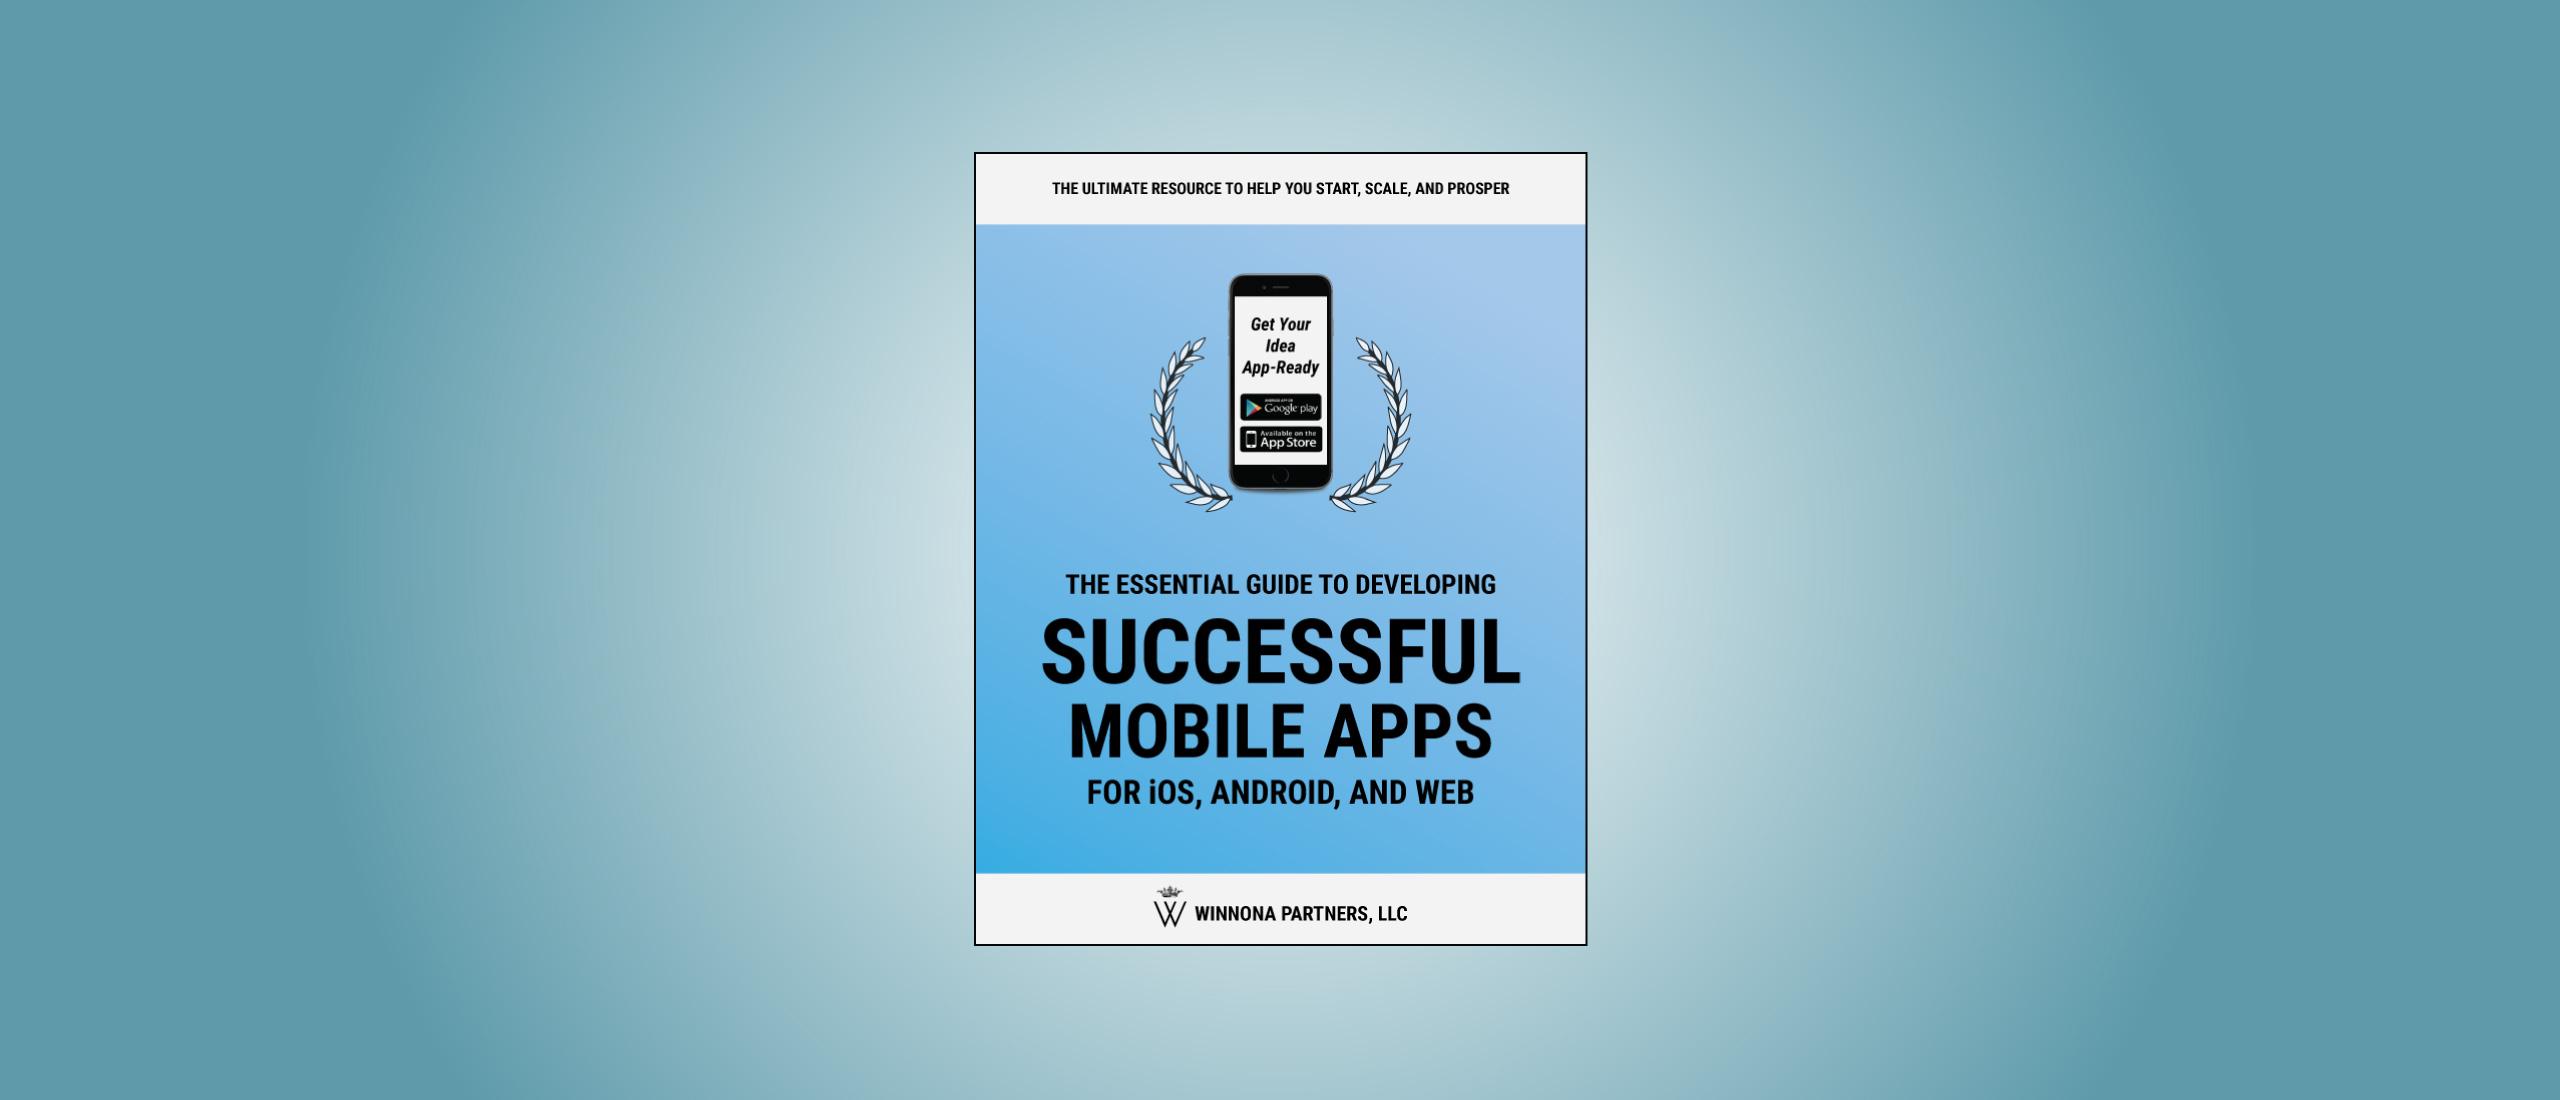 How to create successful mobile apps free resource by Winnona Partners